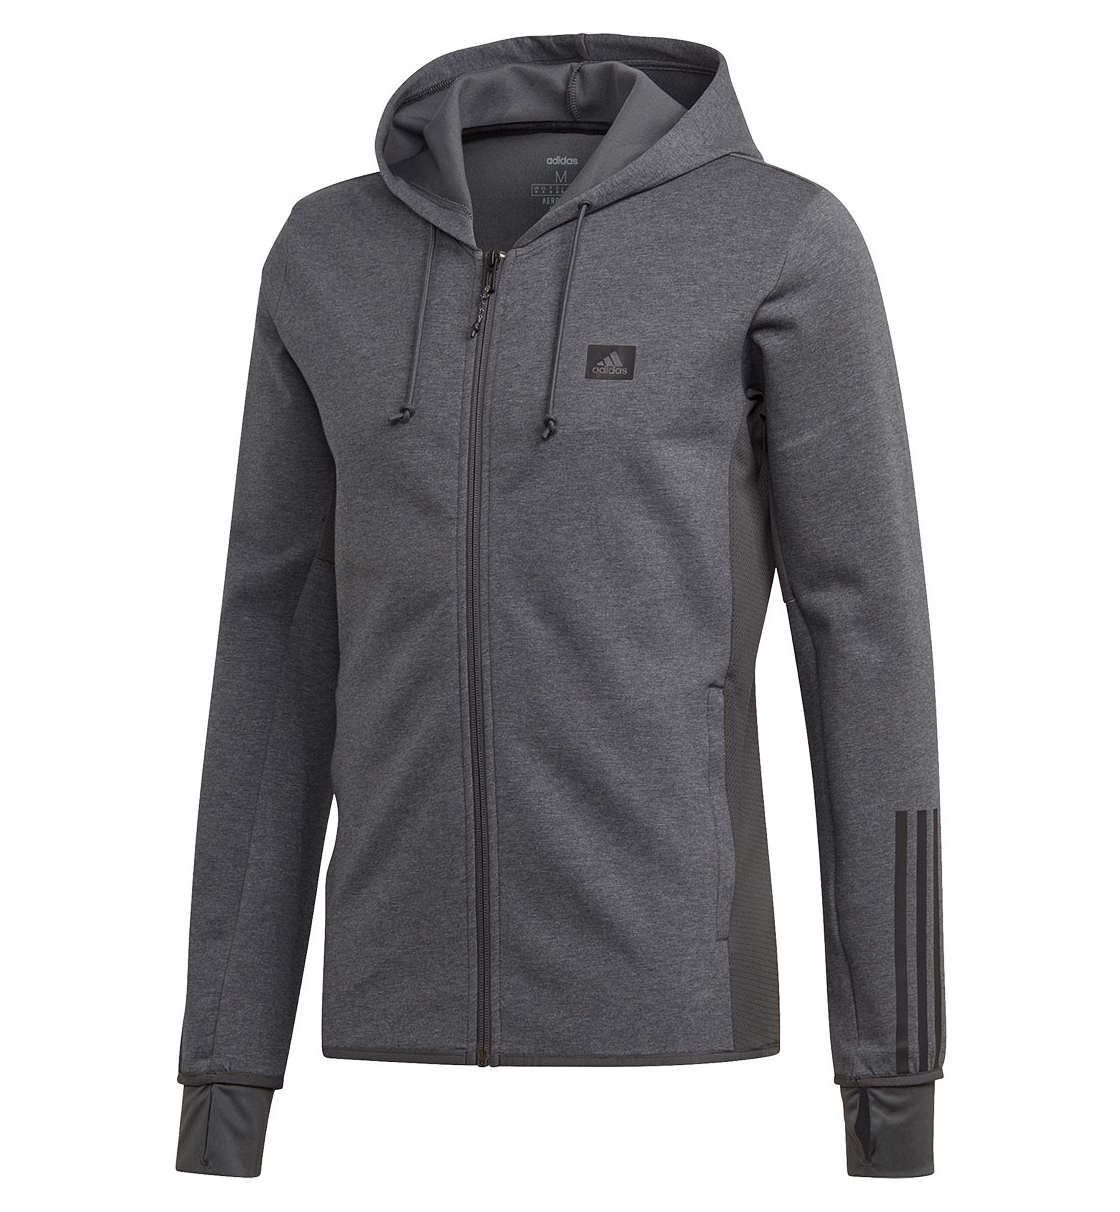 Adidas Fw20 Designed To Move Motion Hooded Tracktop